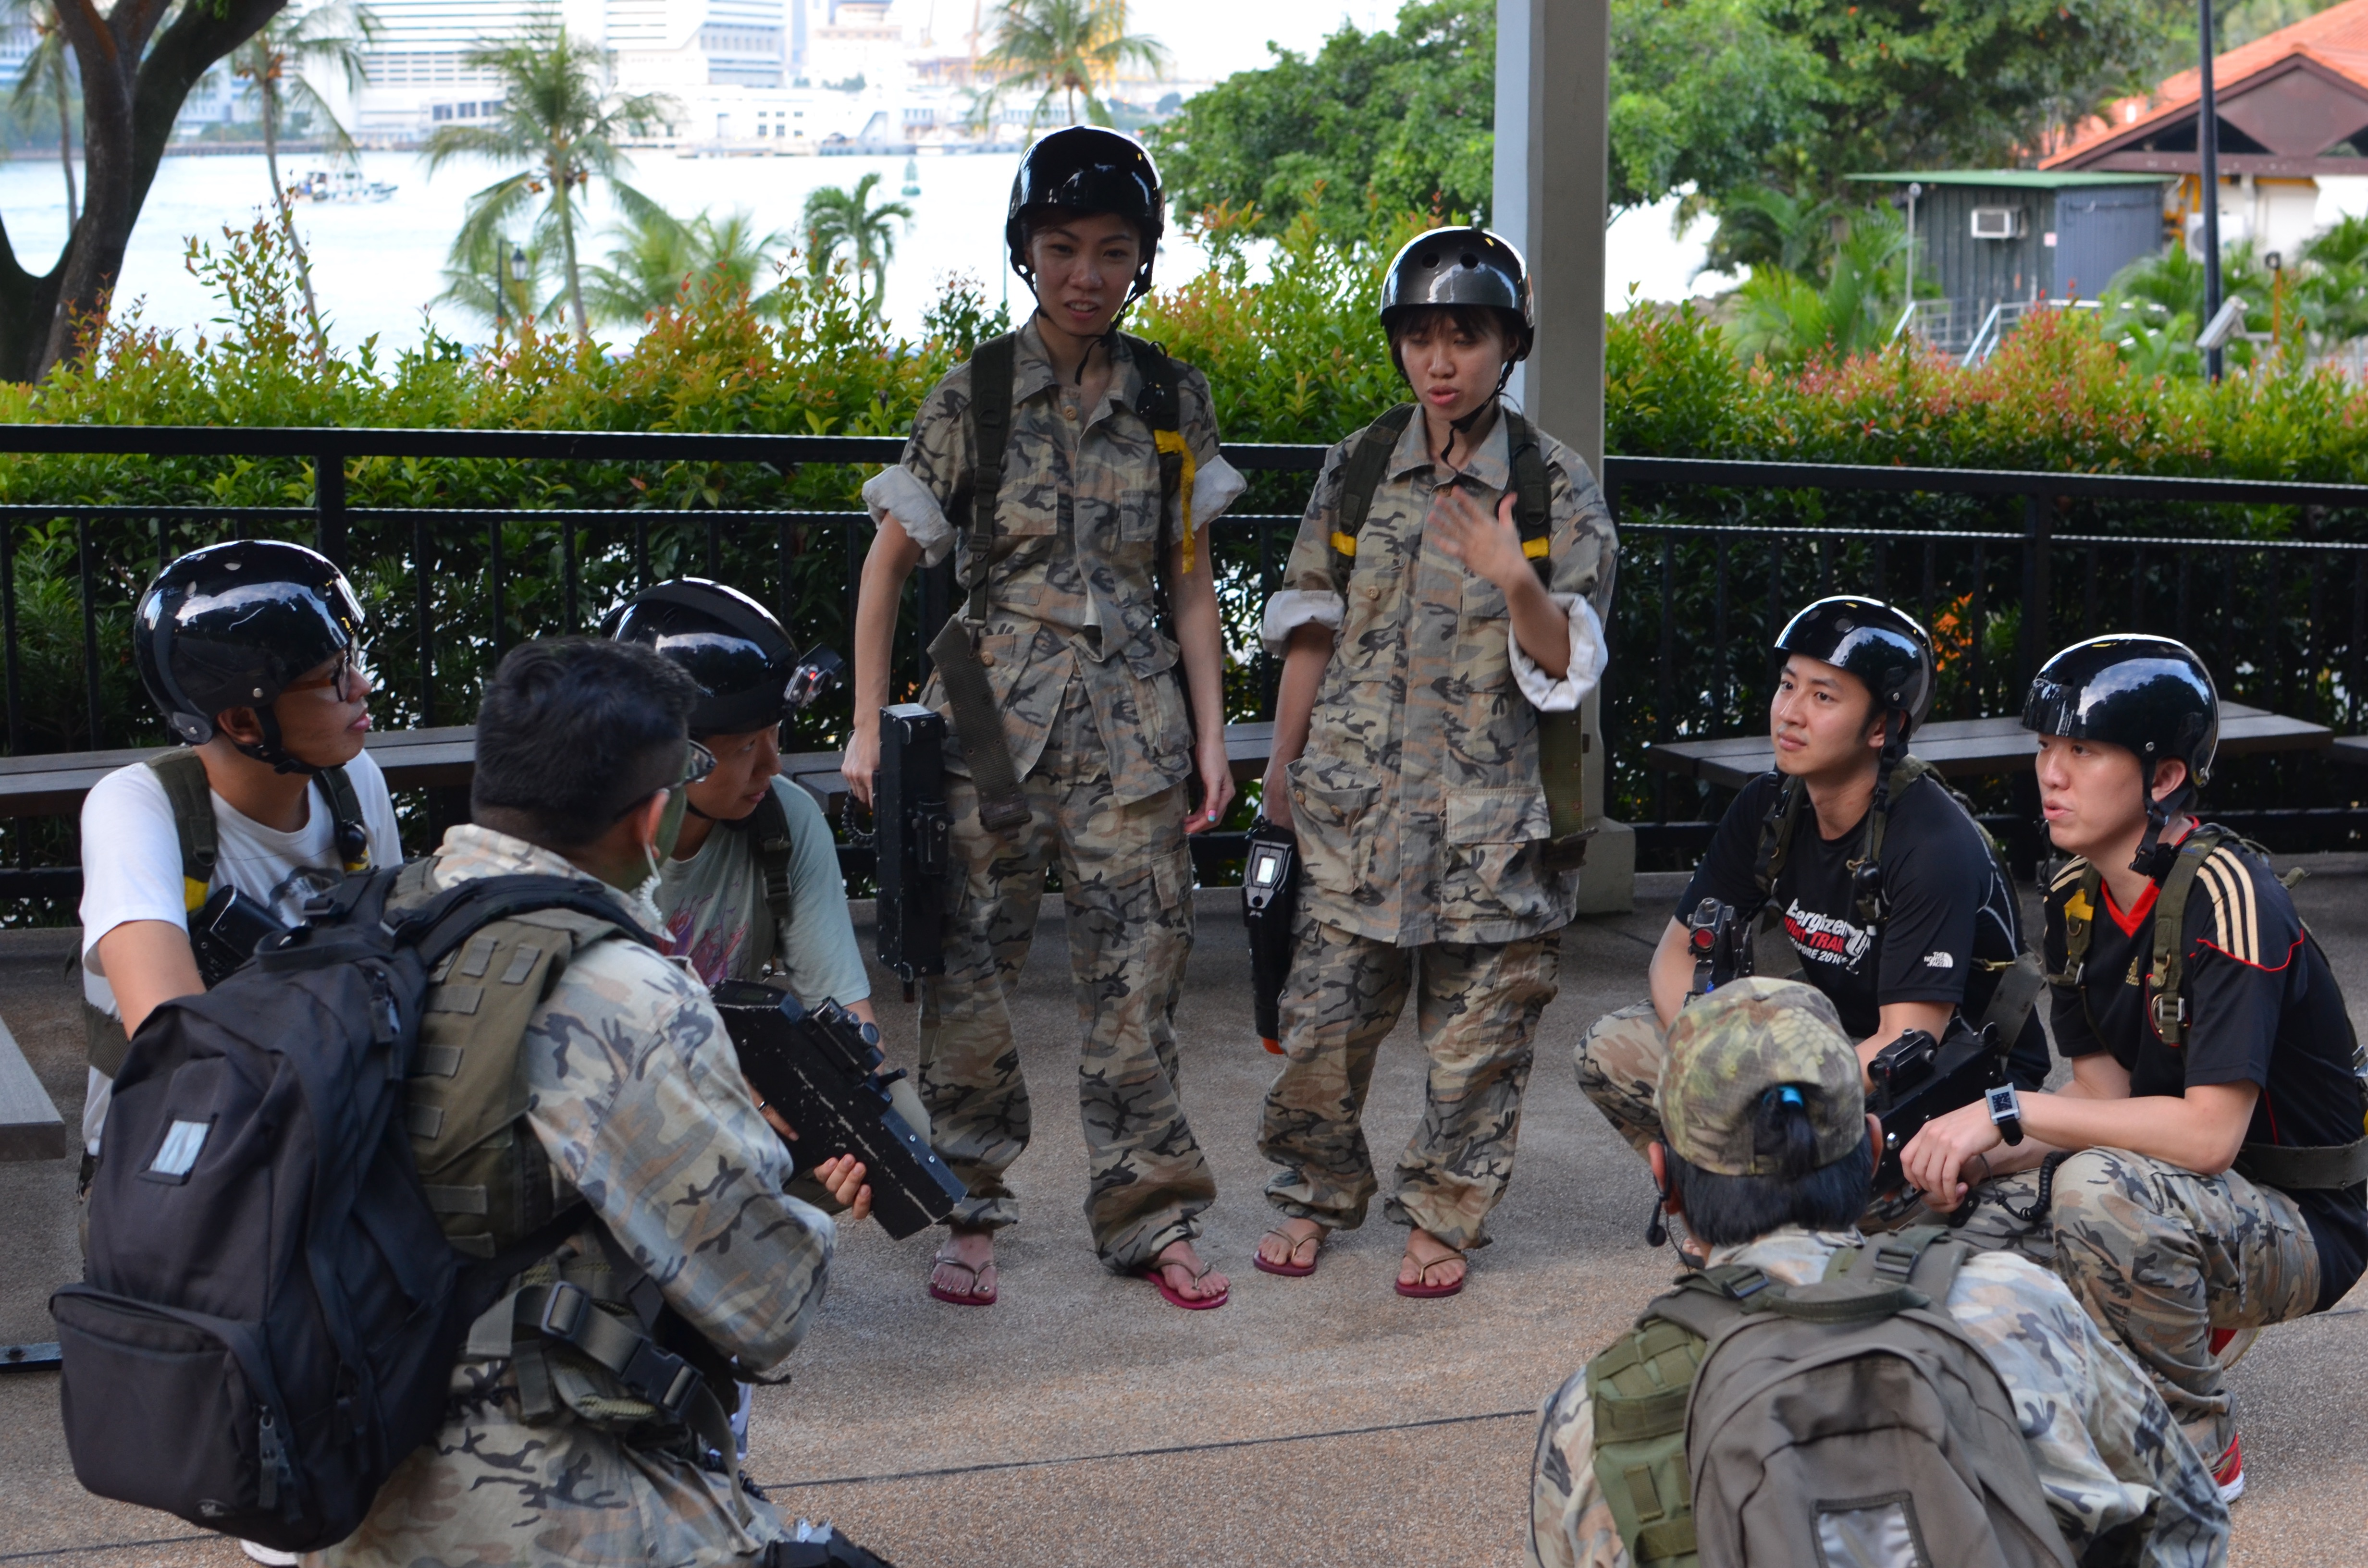 briefing about laser tag mission game